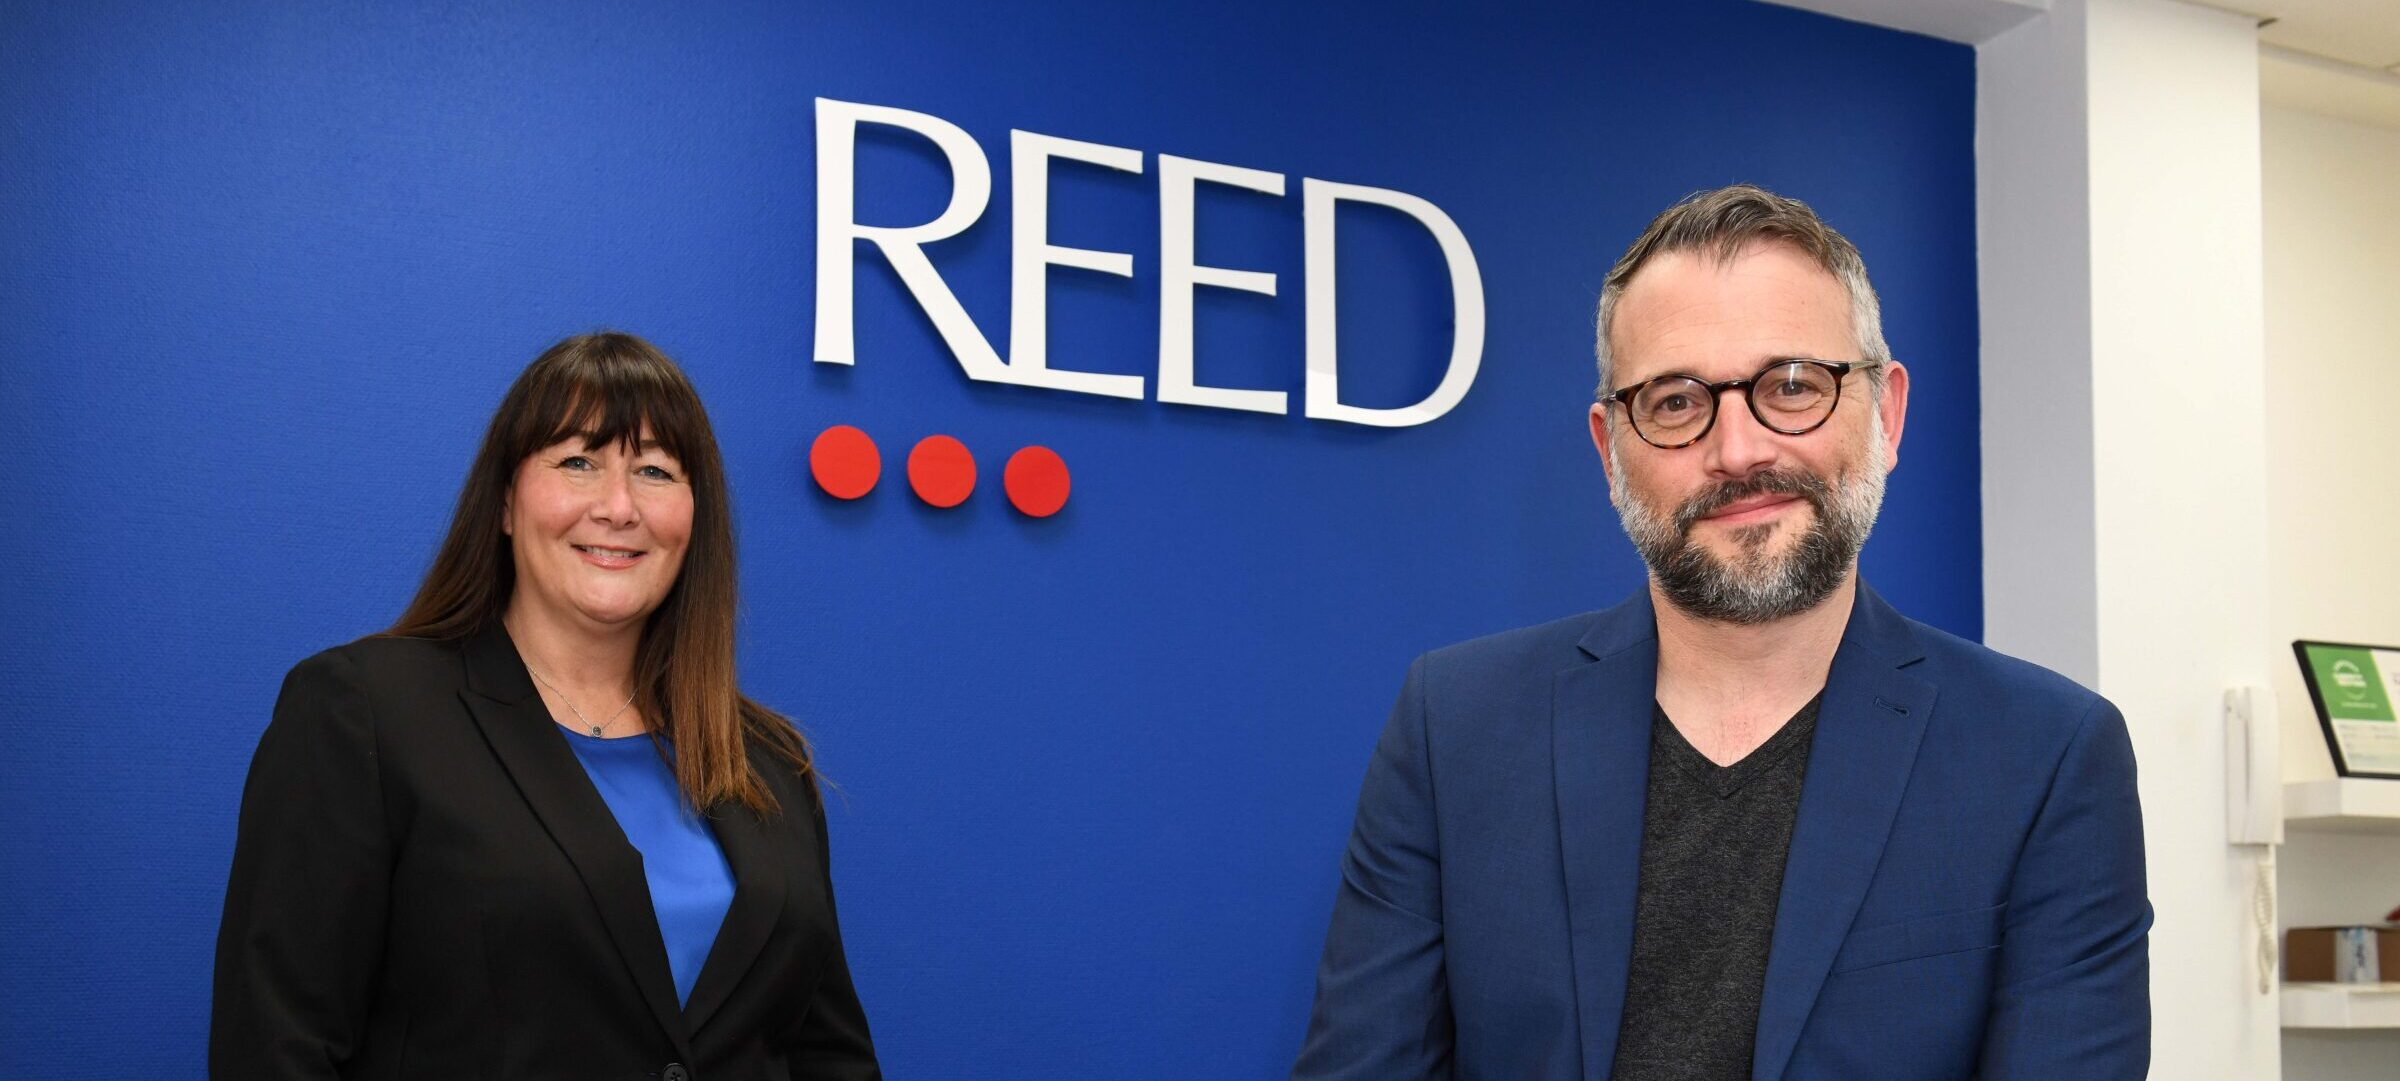 Nicola Whelan from Reed in Partnership and Kieron Goldsborough from Narrative